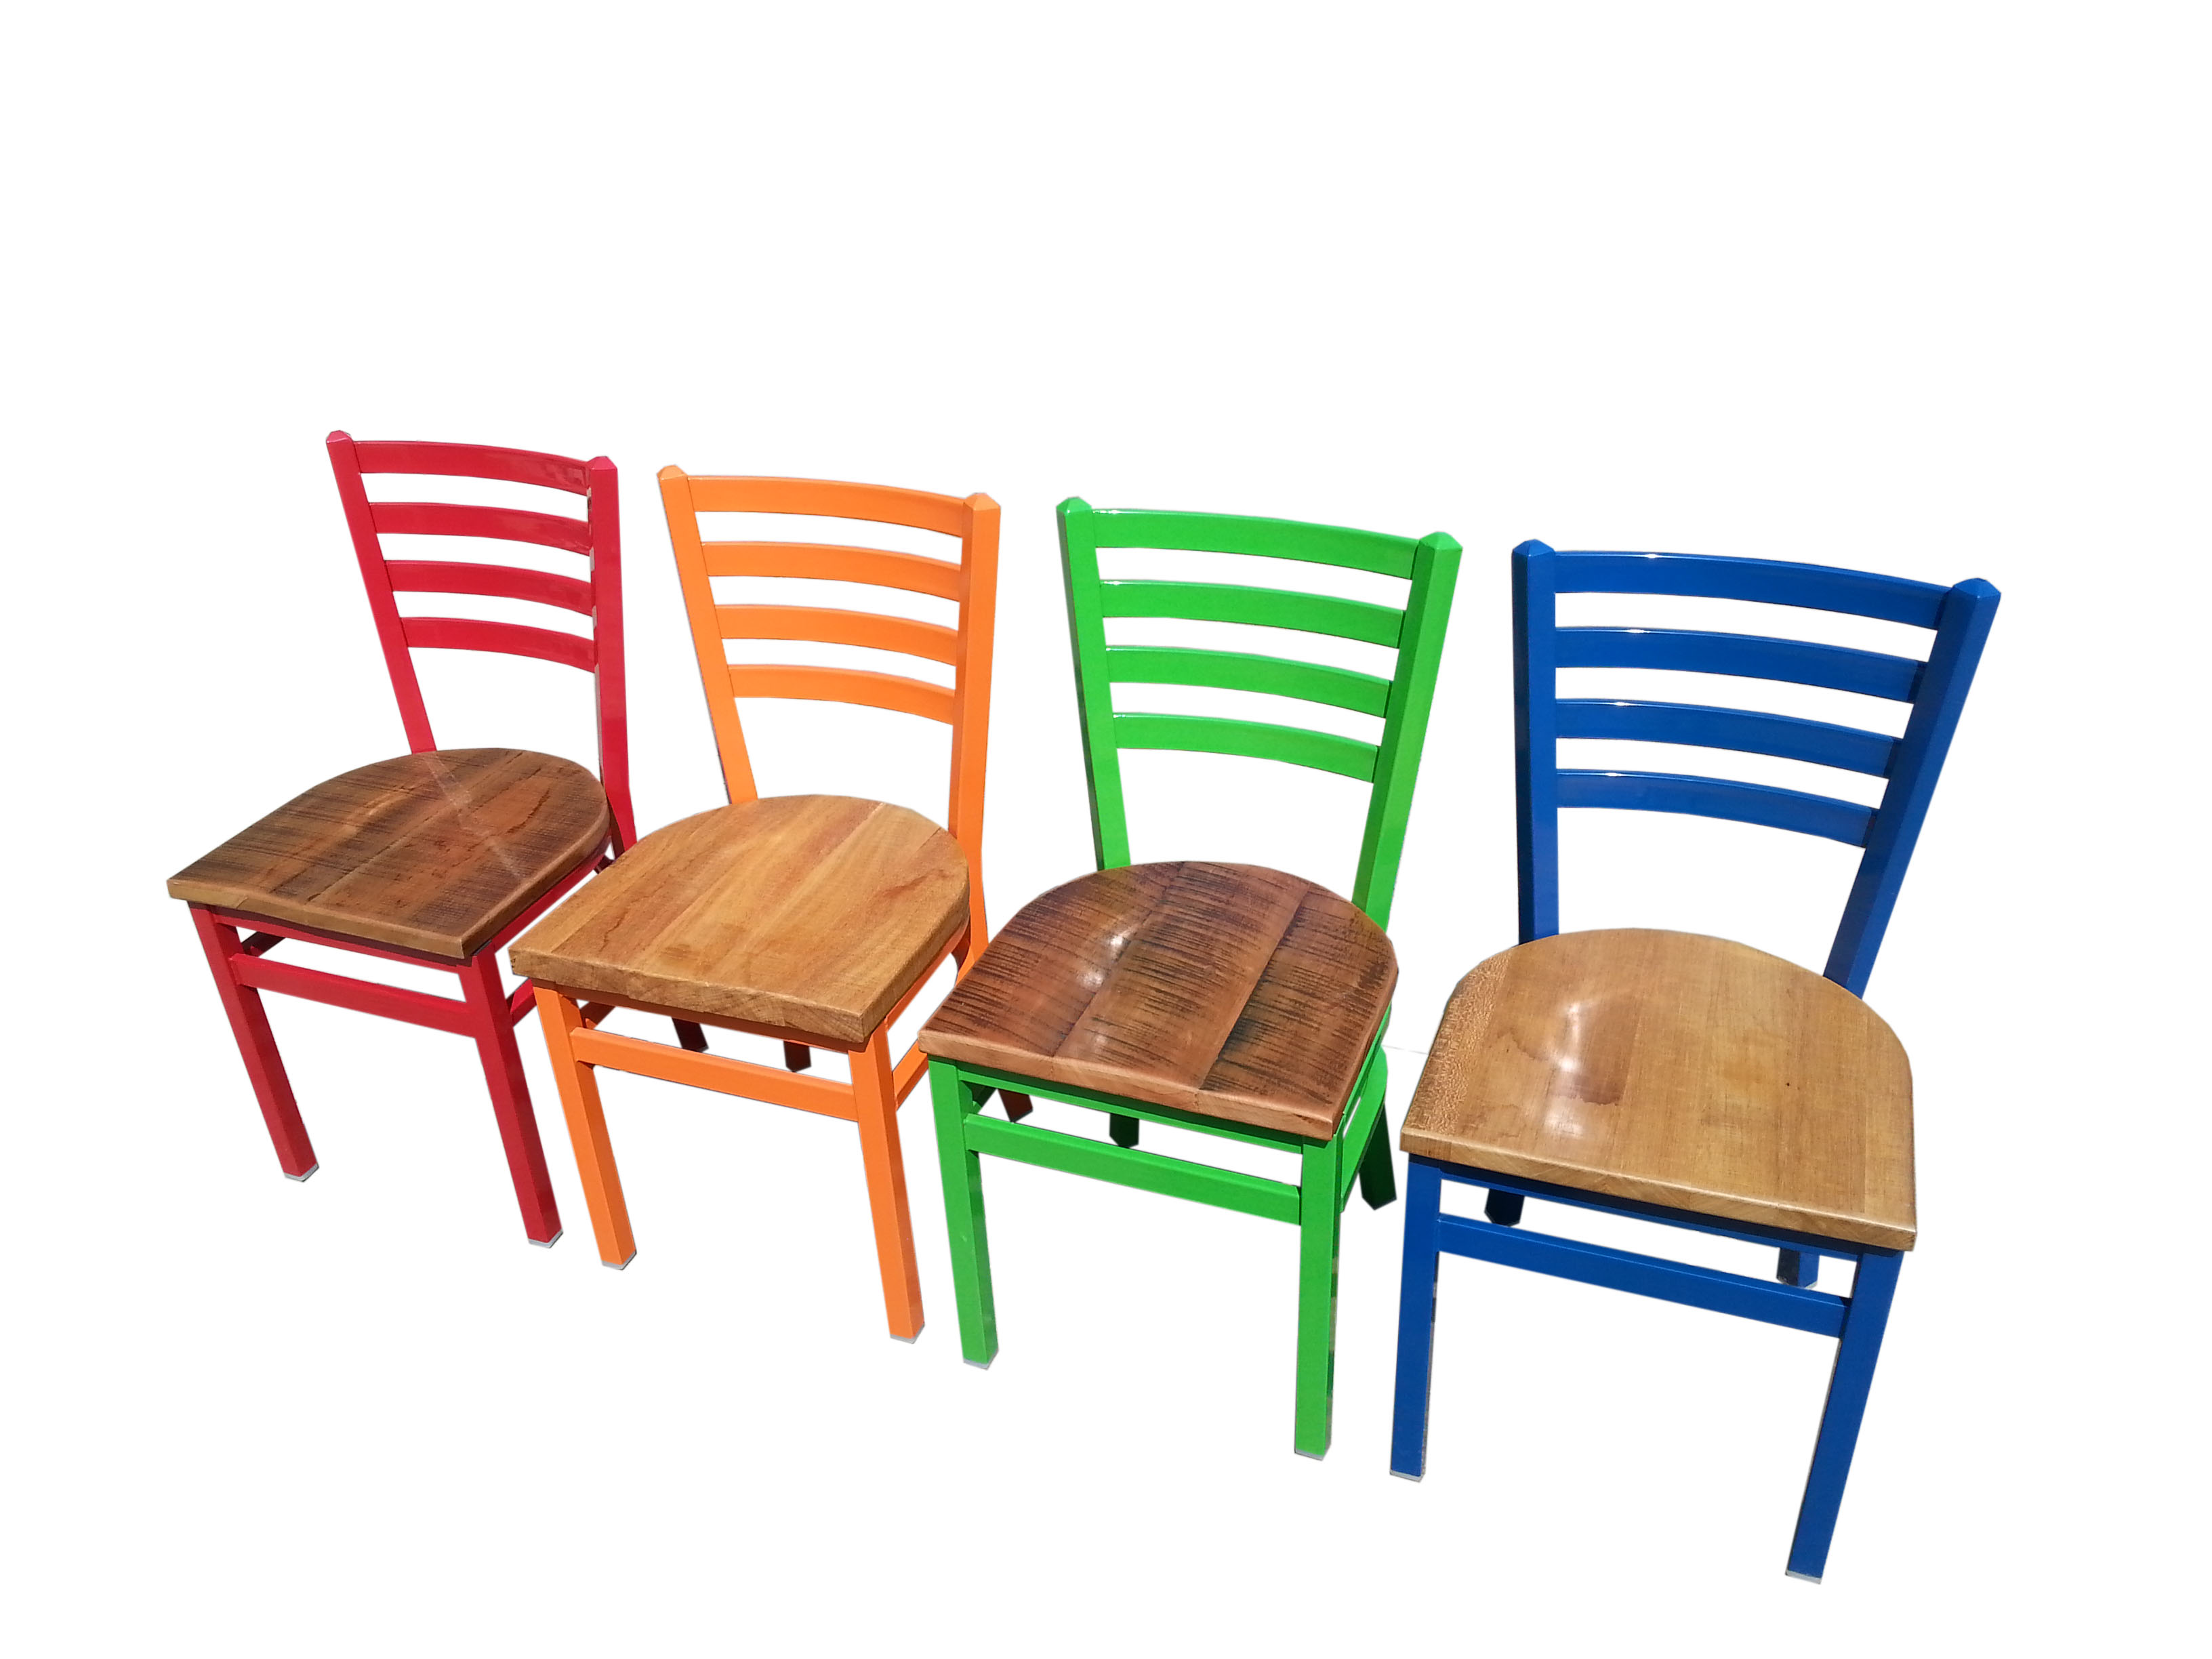 Colorful Wooden Chairs Industrial Ladderback Chair Restaurant And Cafe Supplies